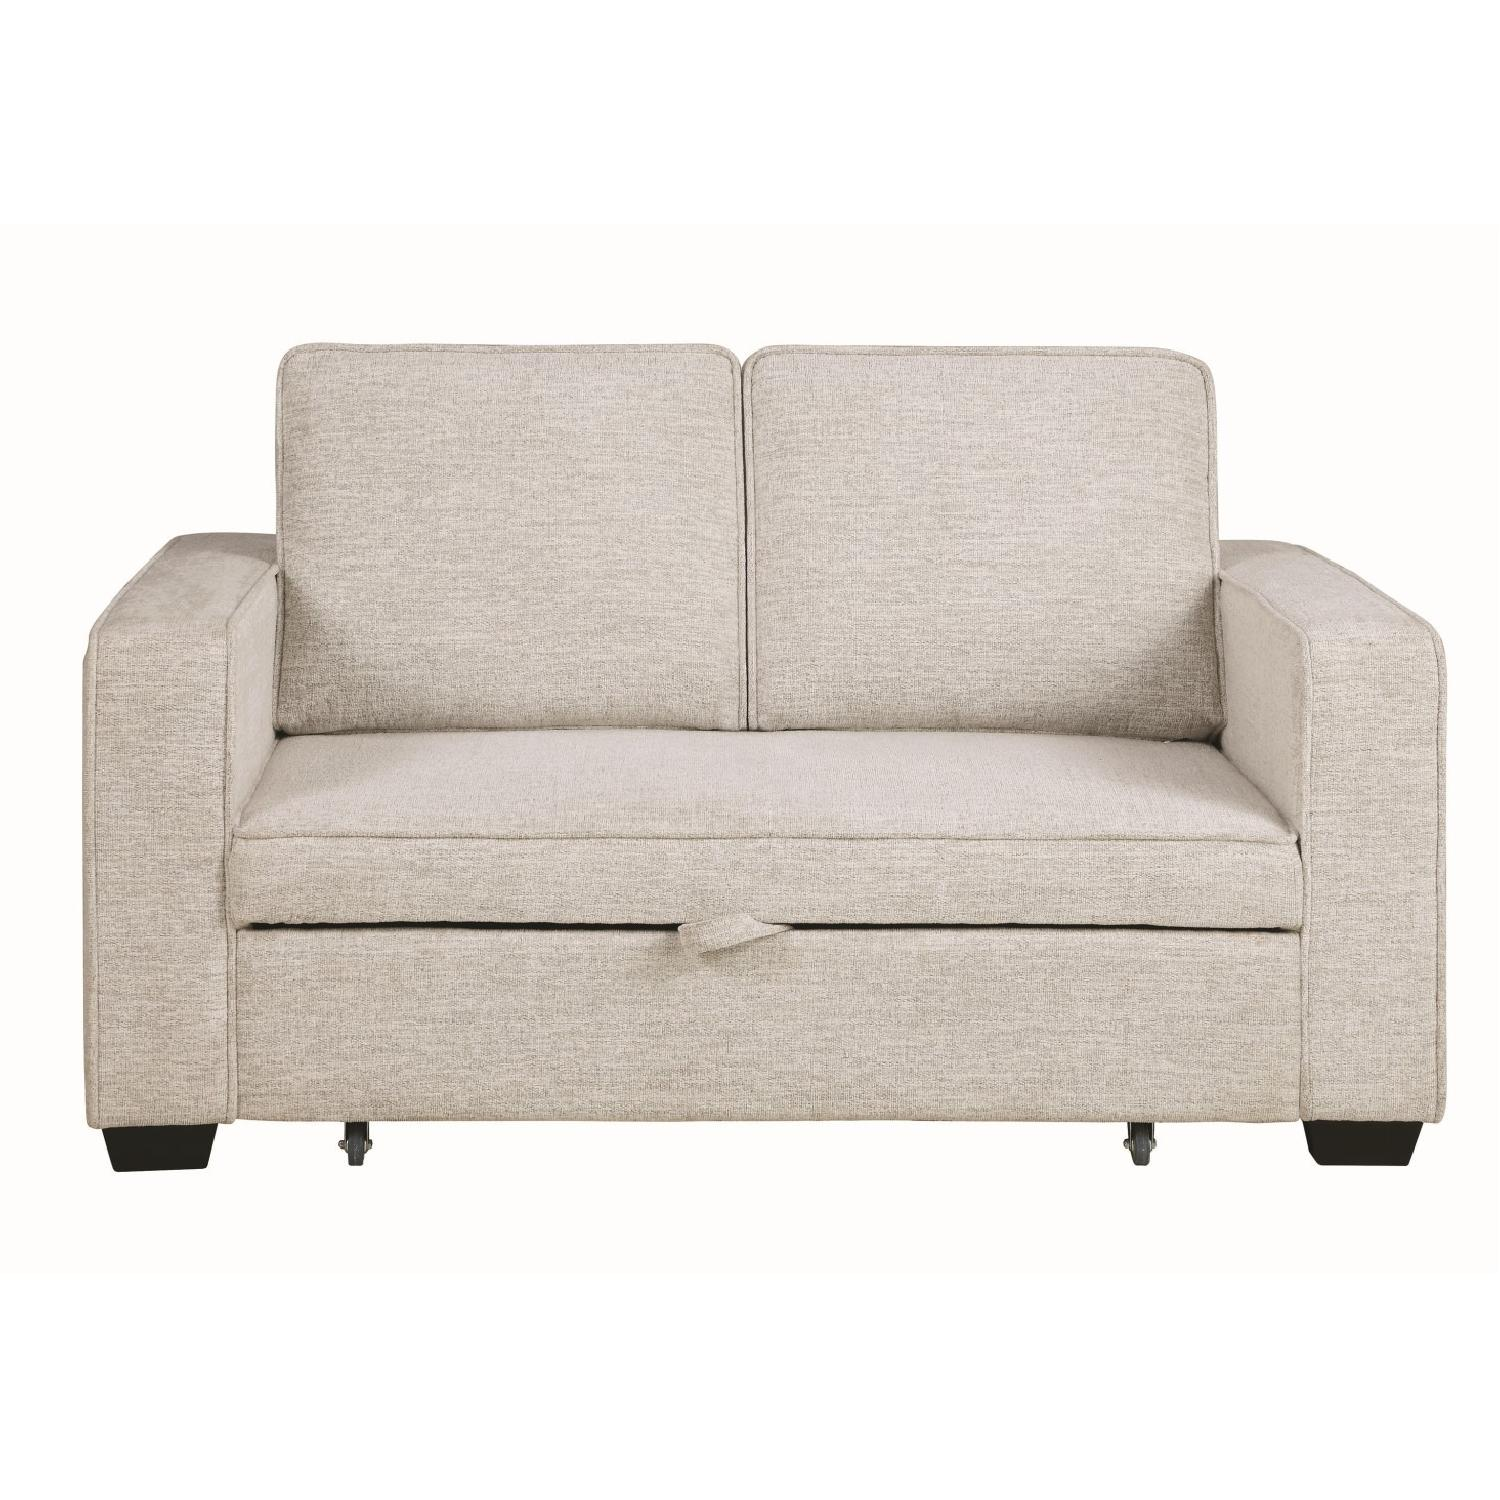 Compact Sofabed in Beige Chenille Fabric w/ Pull-Out Sleeper - image-0